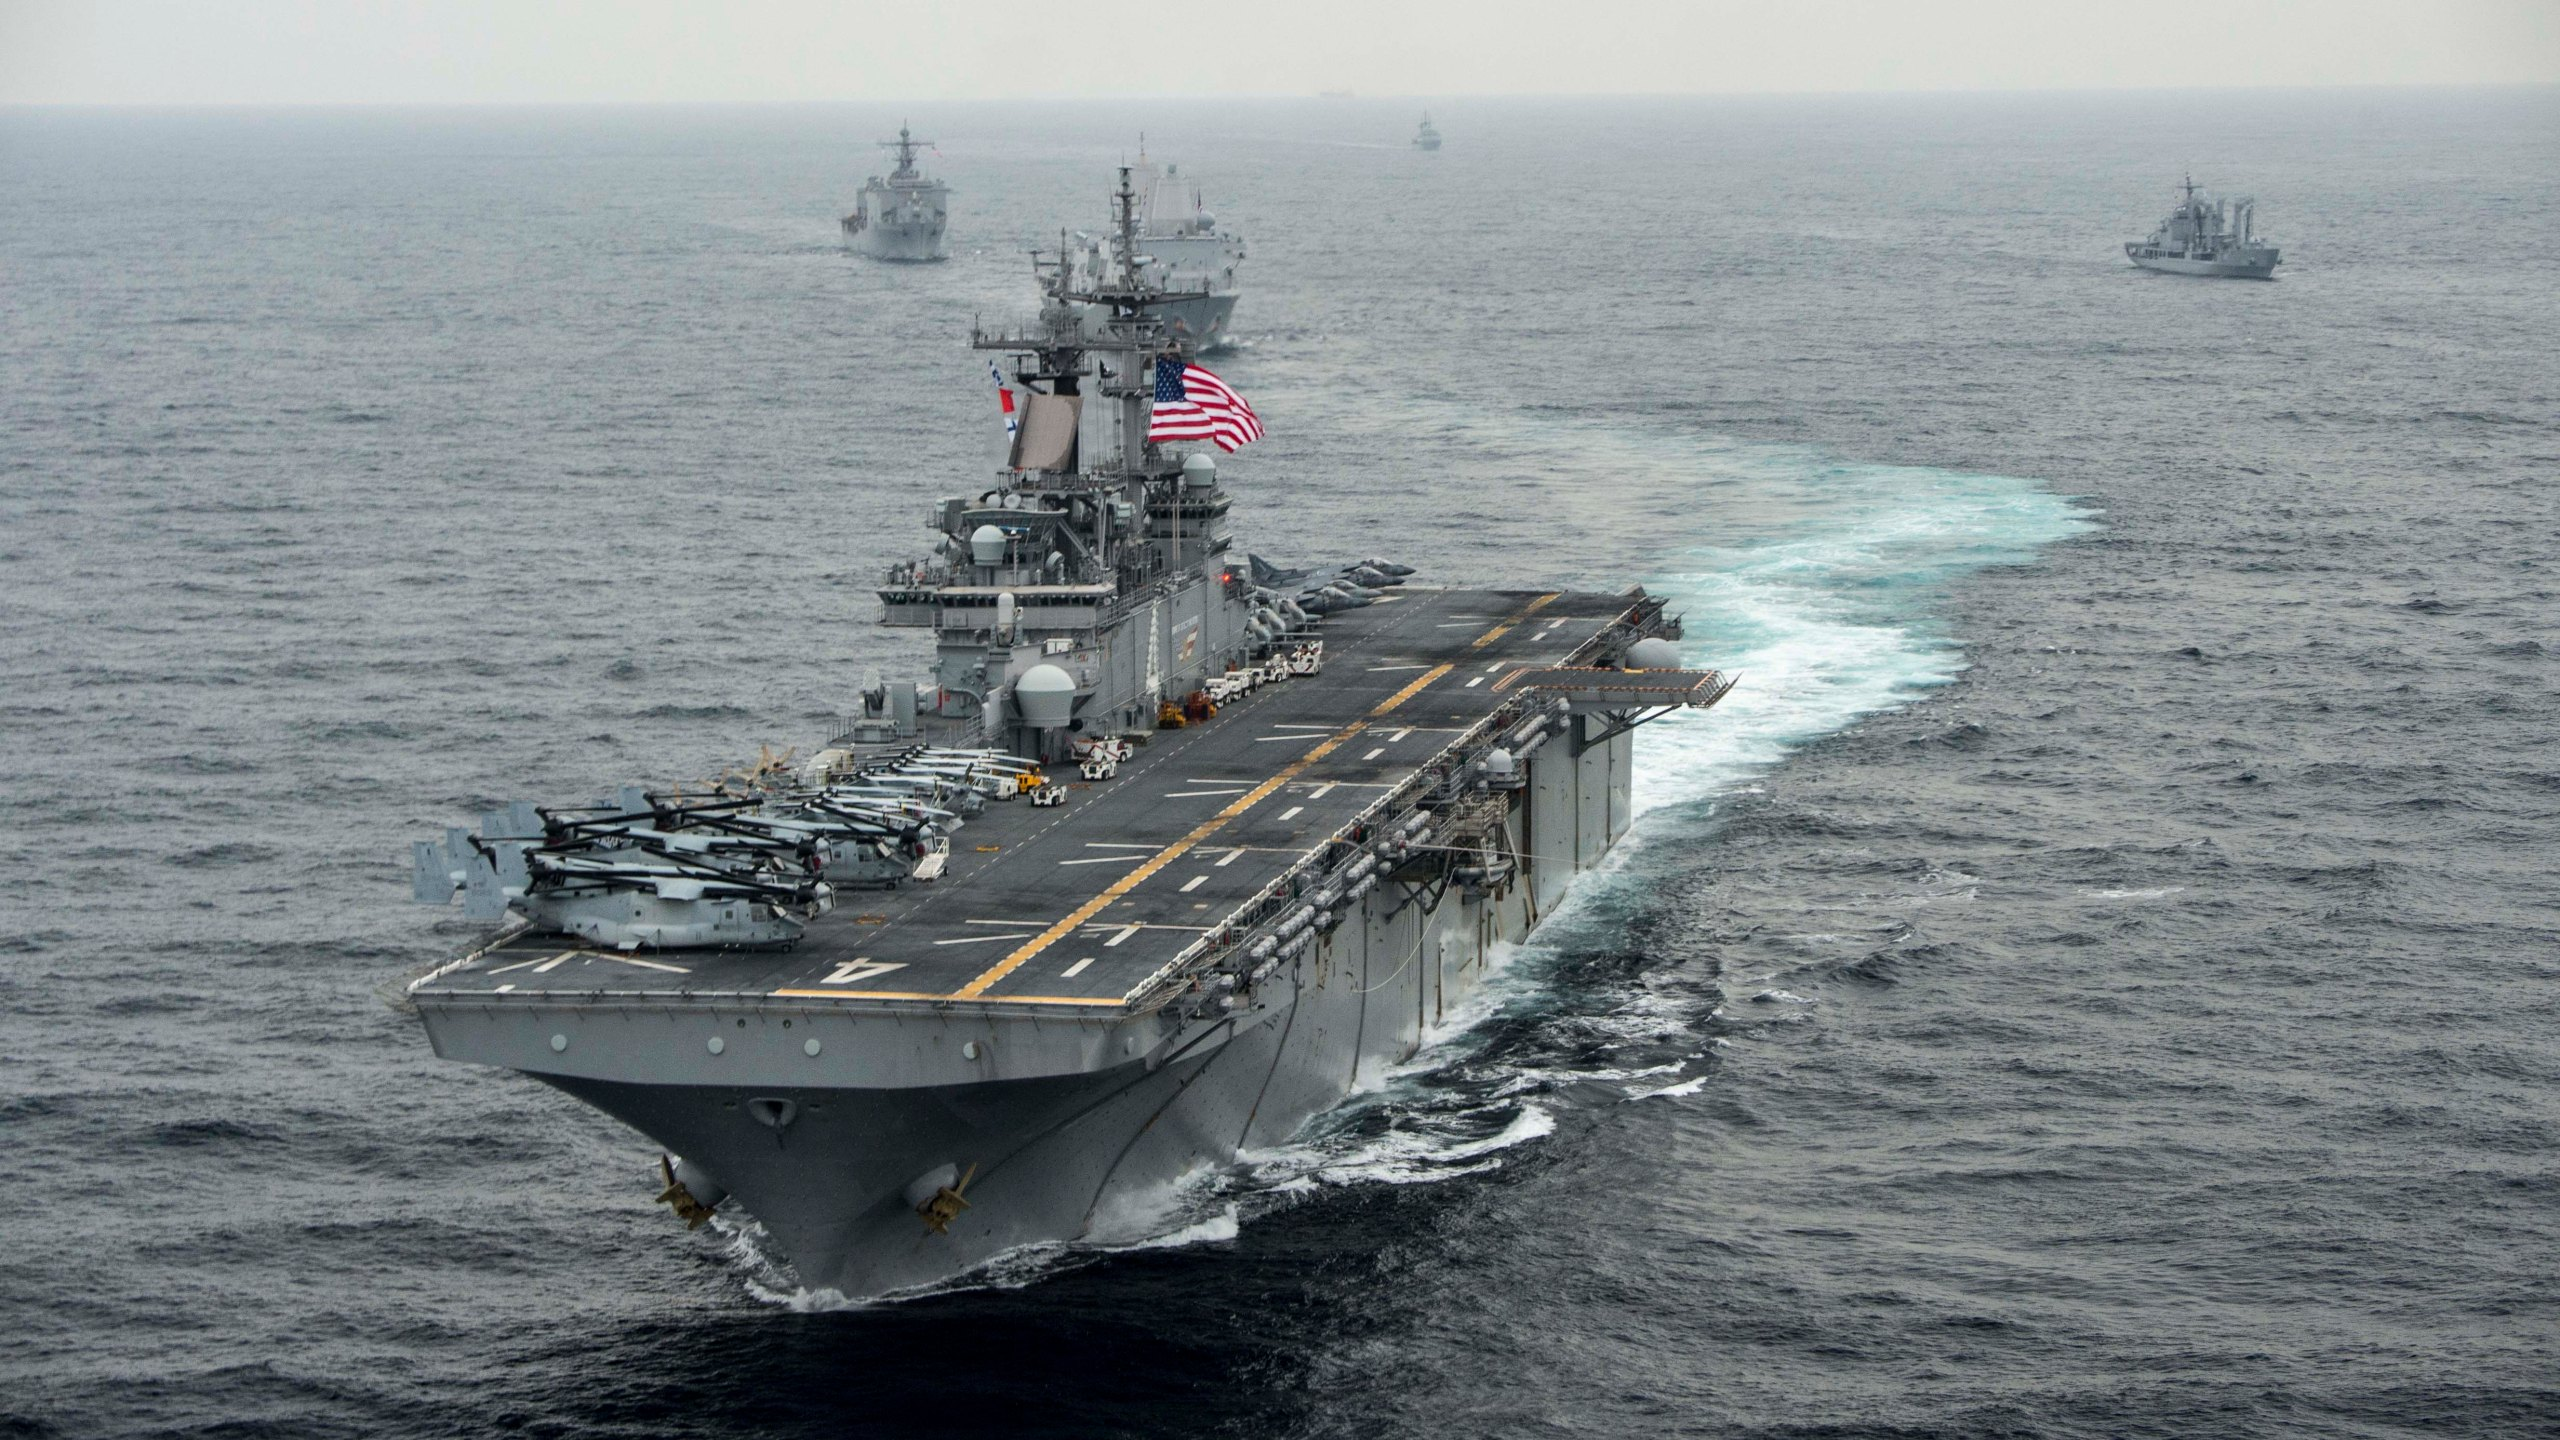 In this handout photo provided by the U.S. Navy, the amphibious assault ship USS Boxer (LHD 4) transits the East Sea on March 8, 2016 during Exercise Ssang Yong 2016. (Credit: MCSN Craig Z. Rodarte/U.S. Navy via Getty Images)